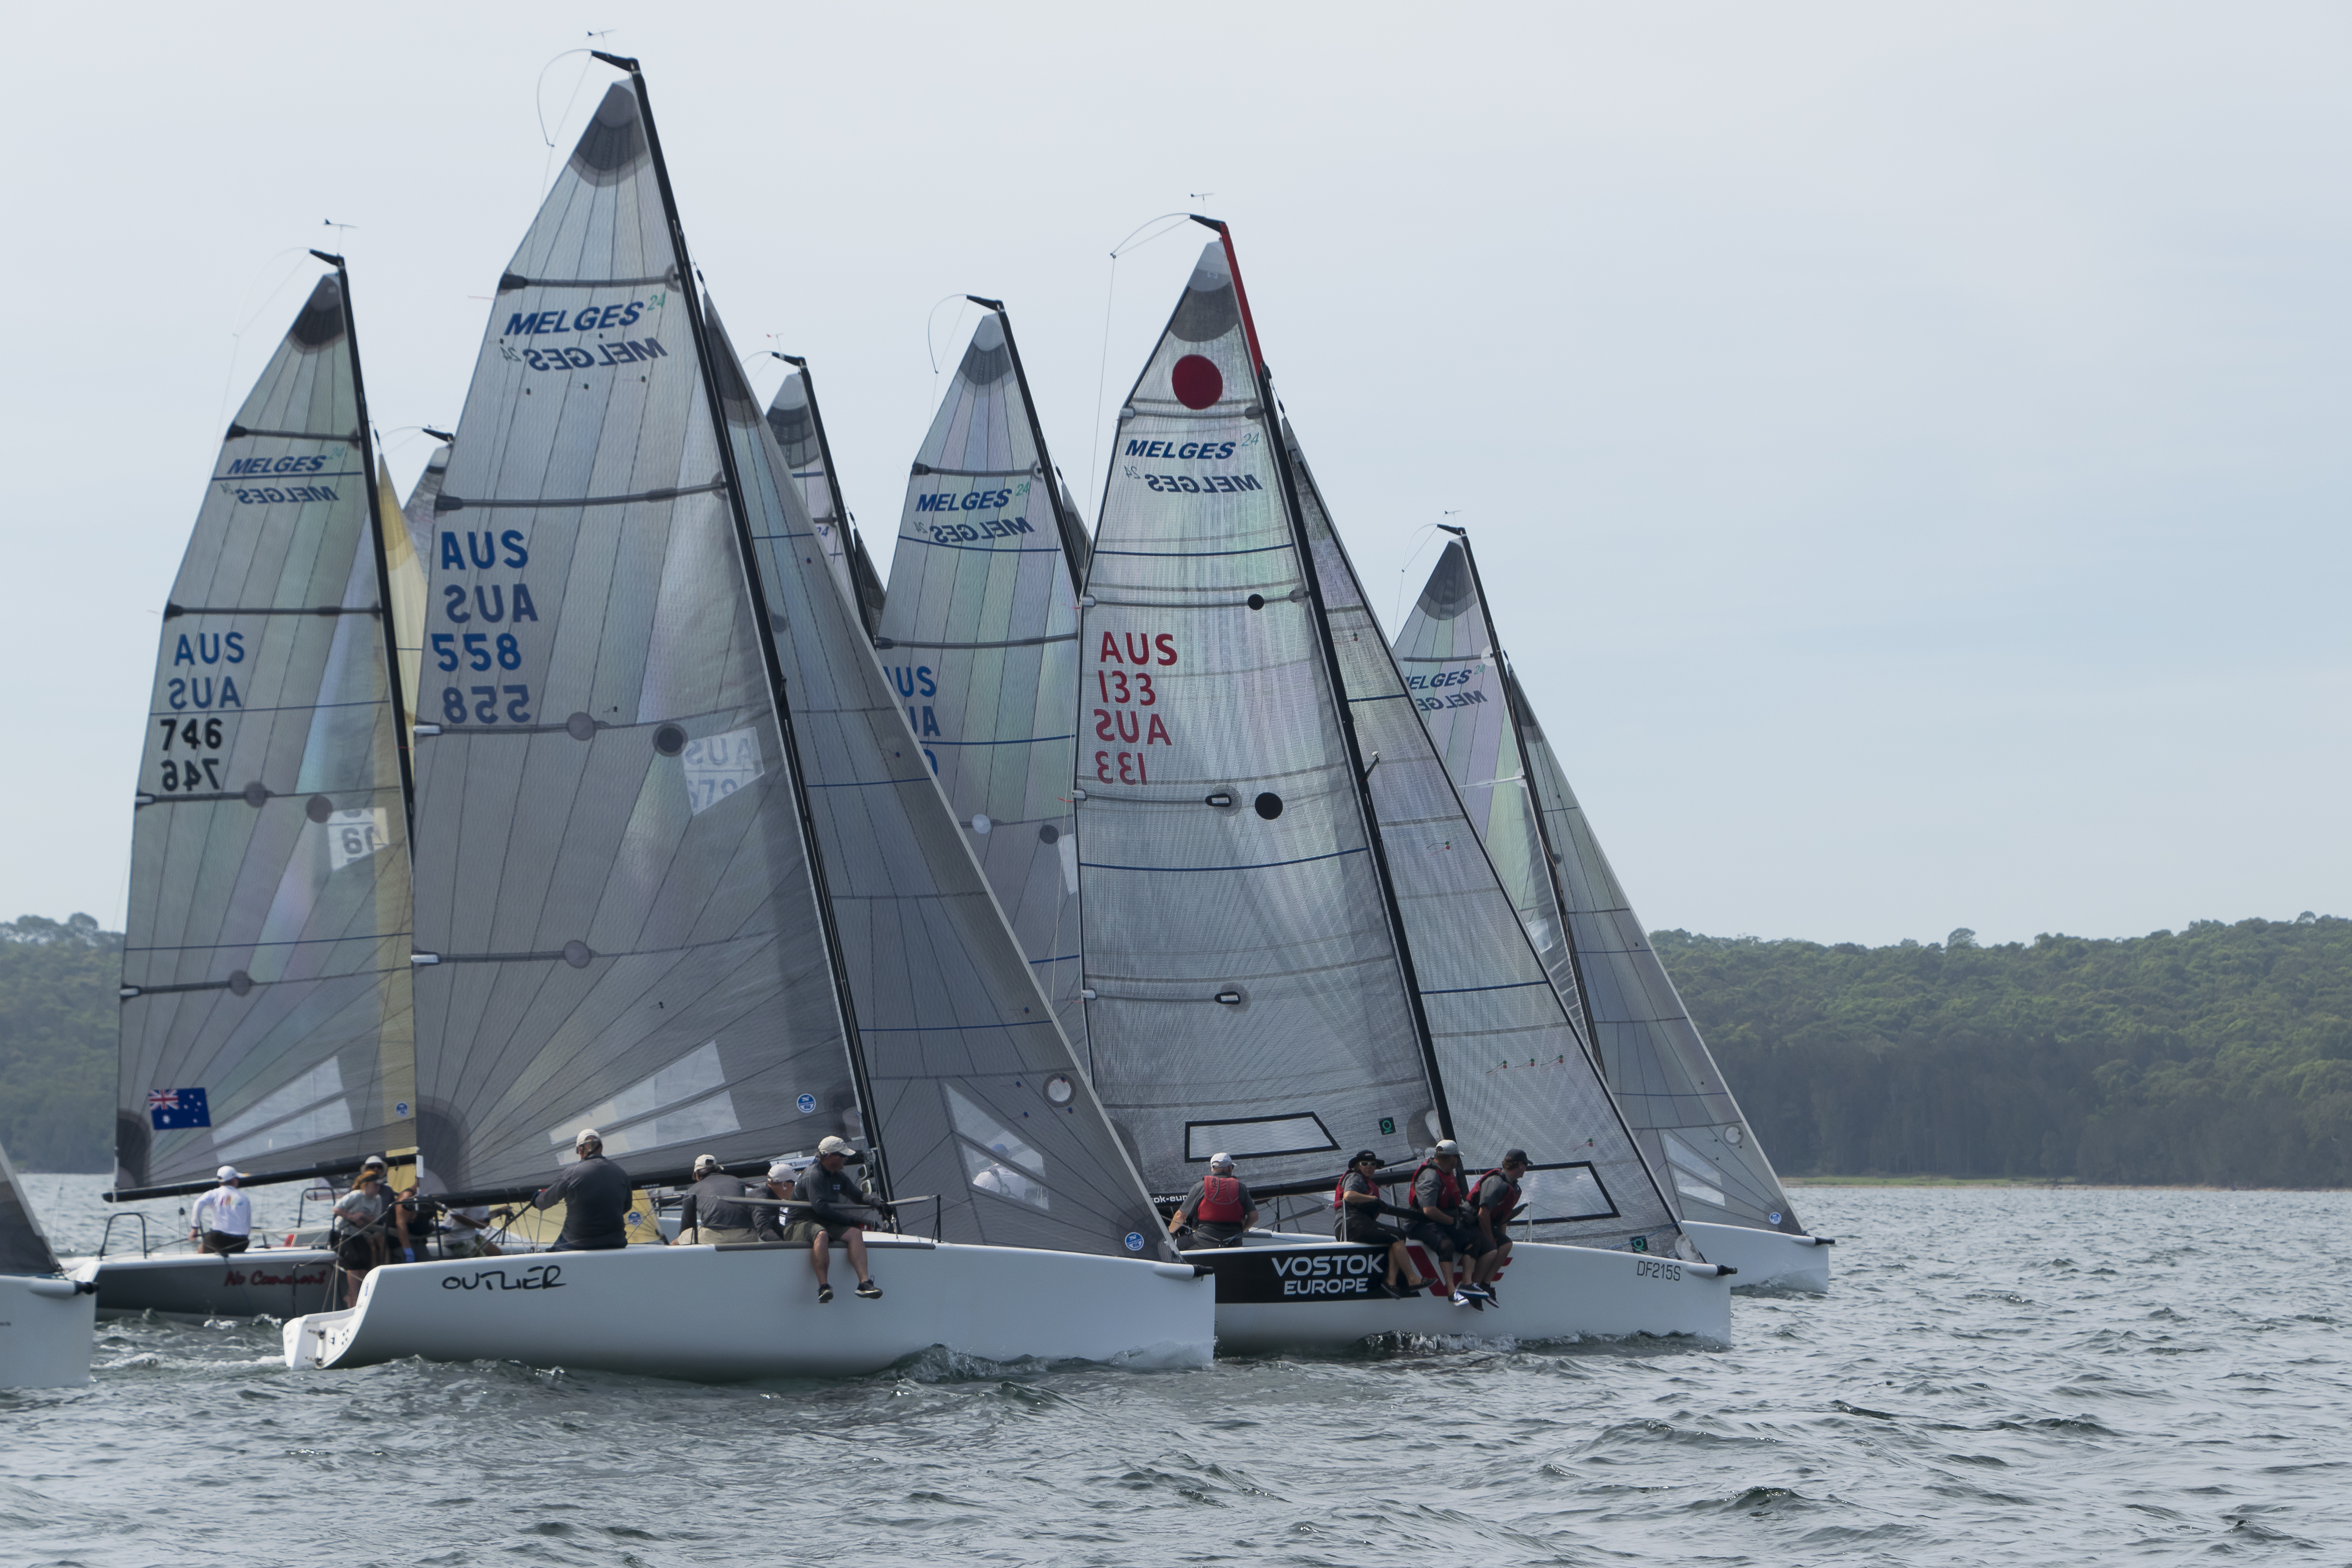 Melges 24 Nationals | Two-time champ eyeing off third title